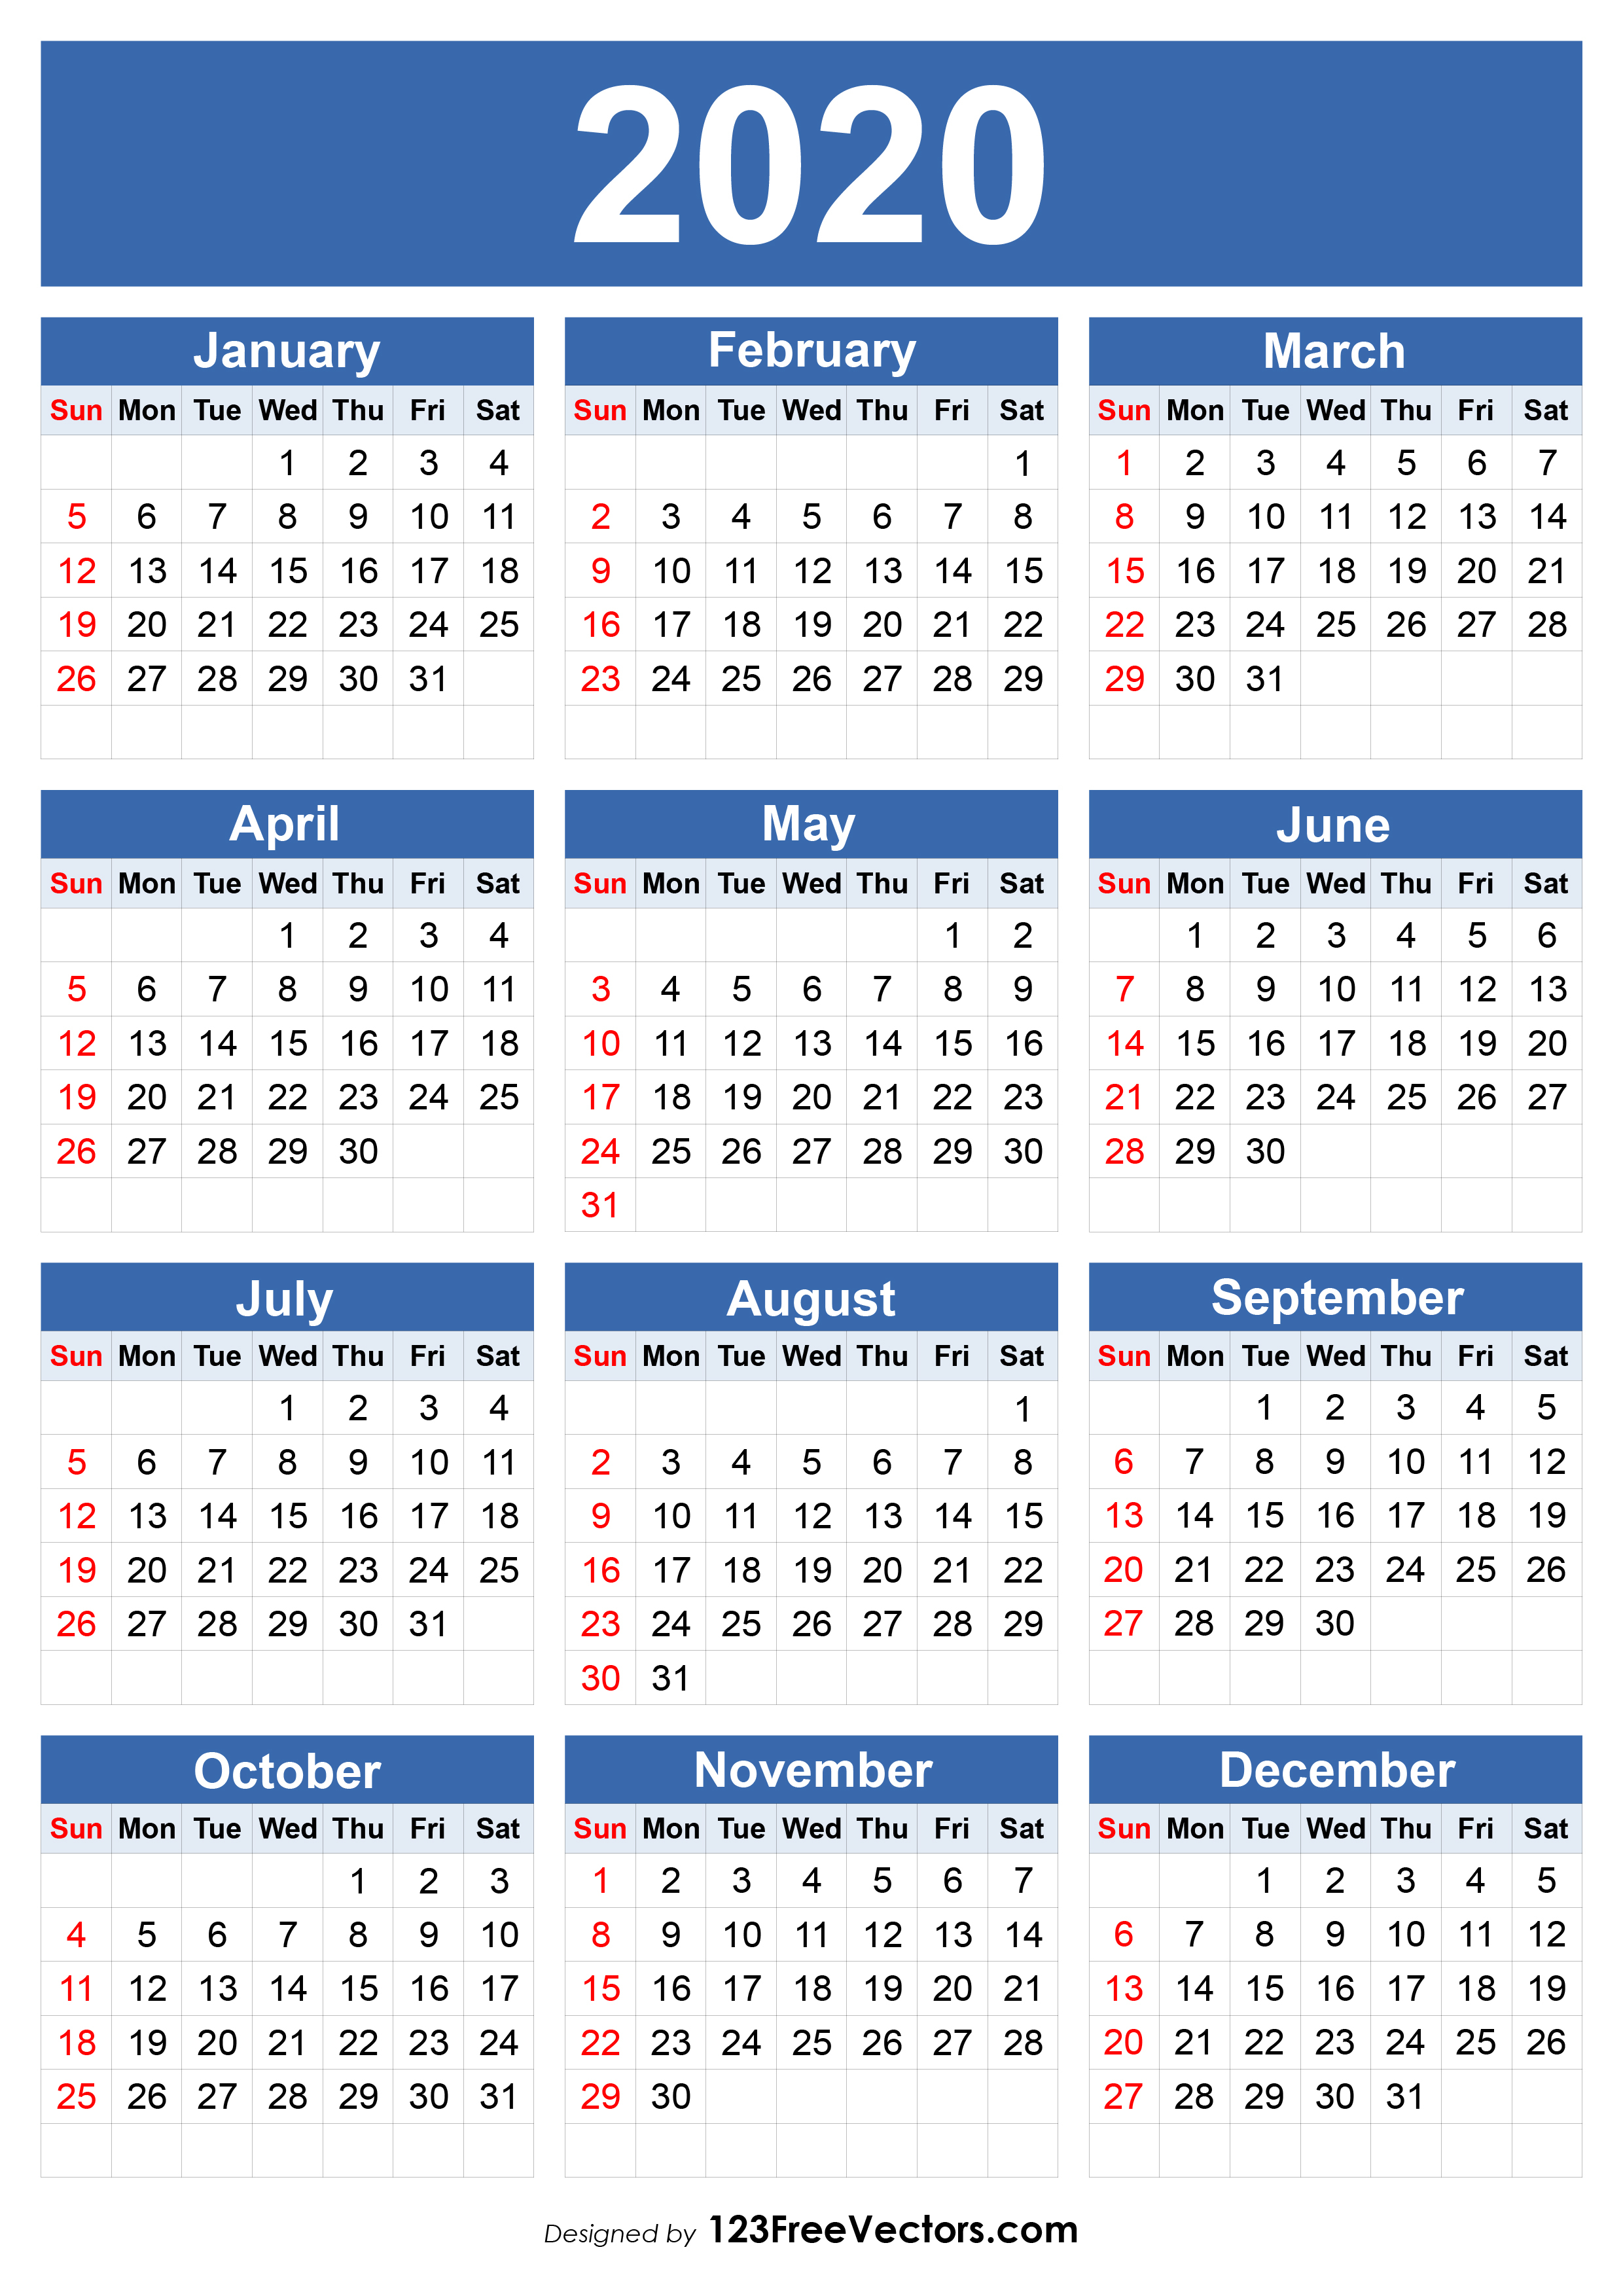 Calendar Wizard 2020 - Wpa.wpart.co with regard to Calendar Wizard 2020 Indesign